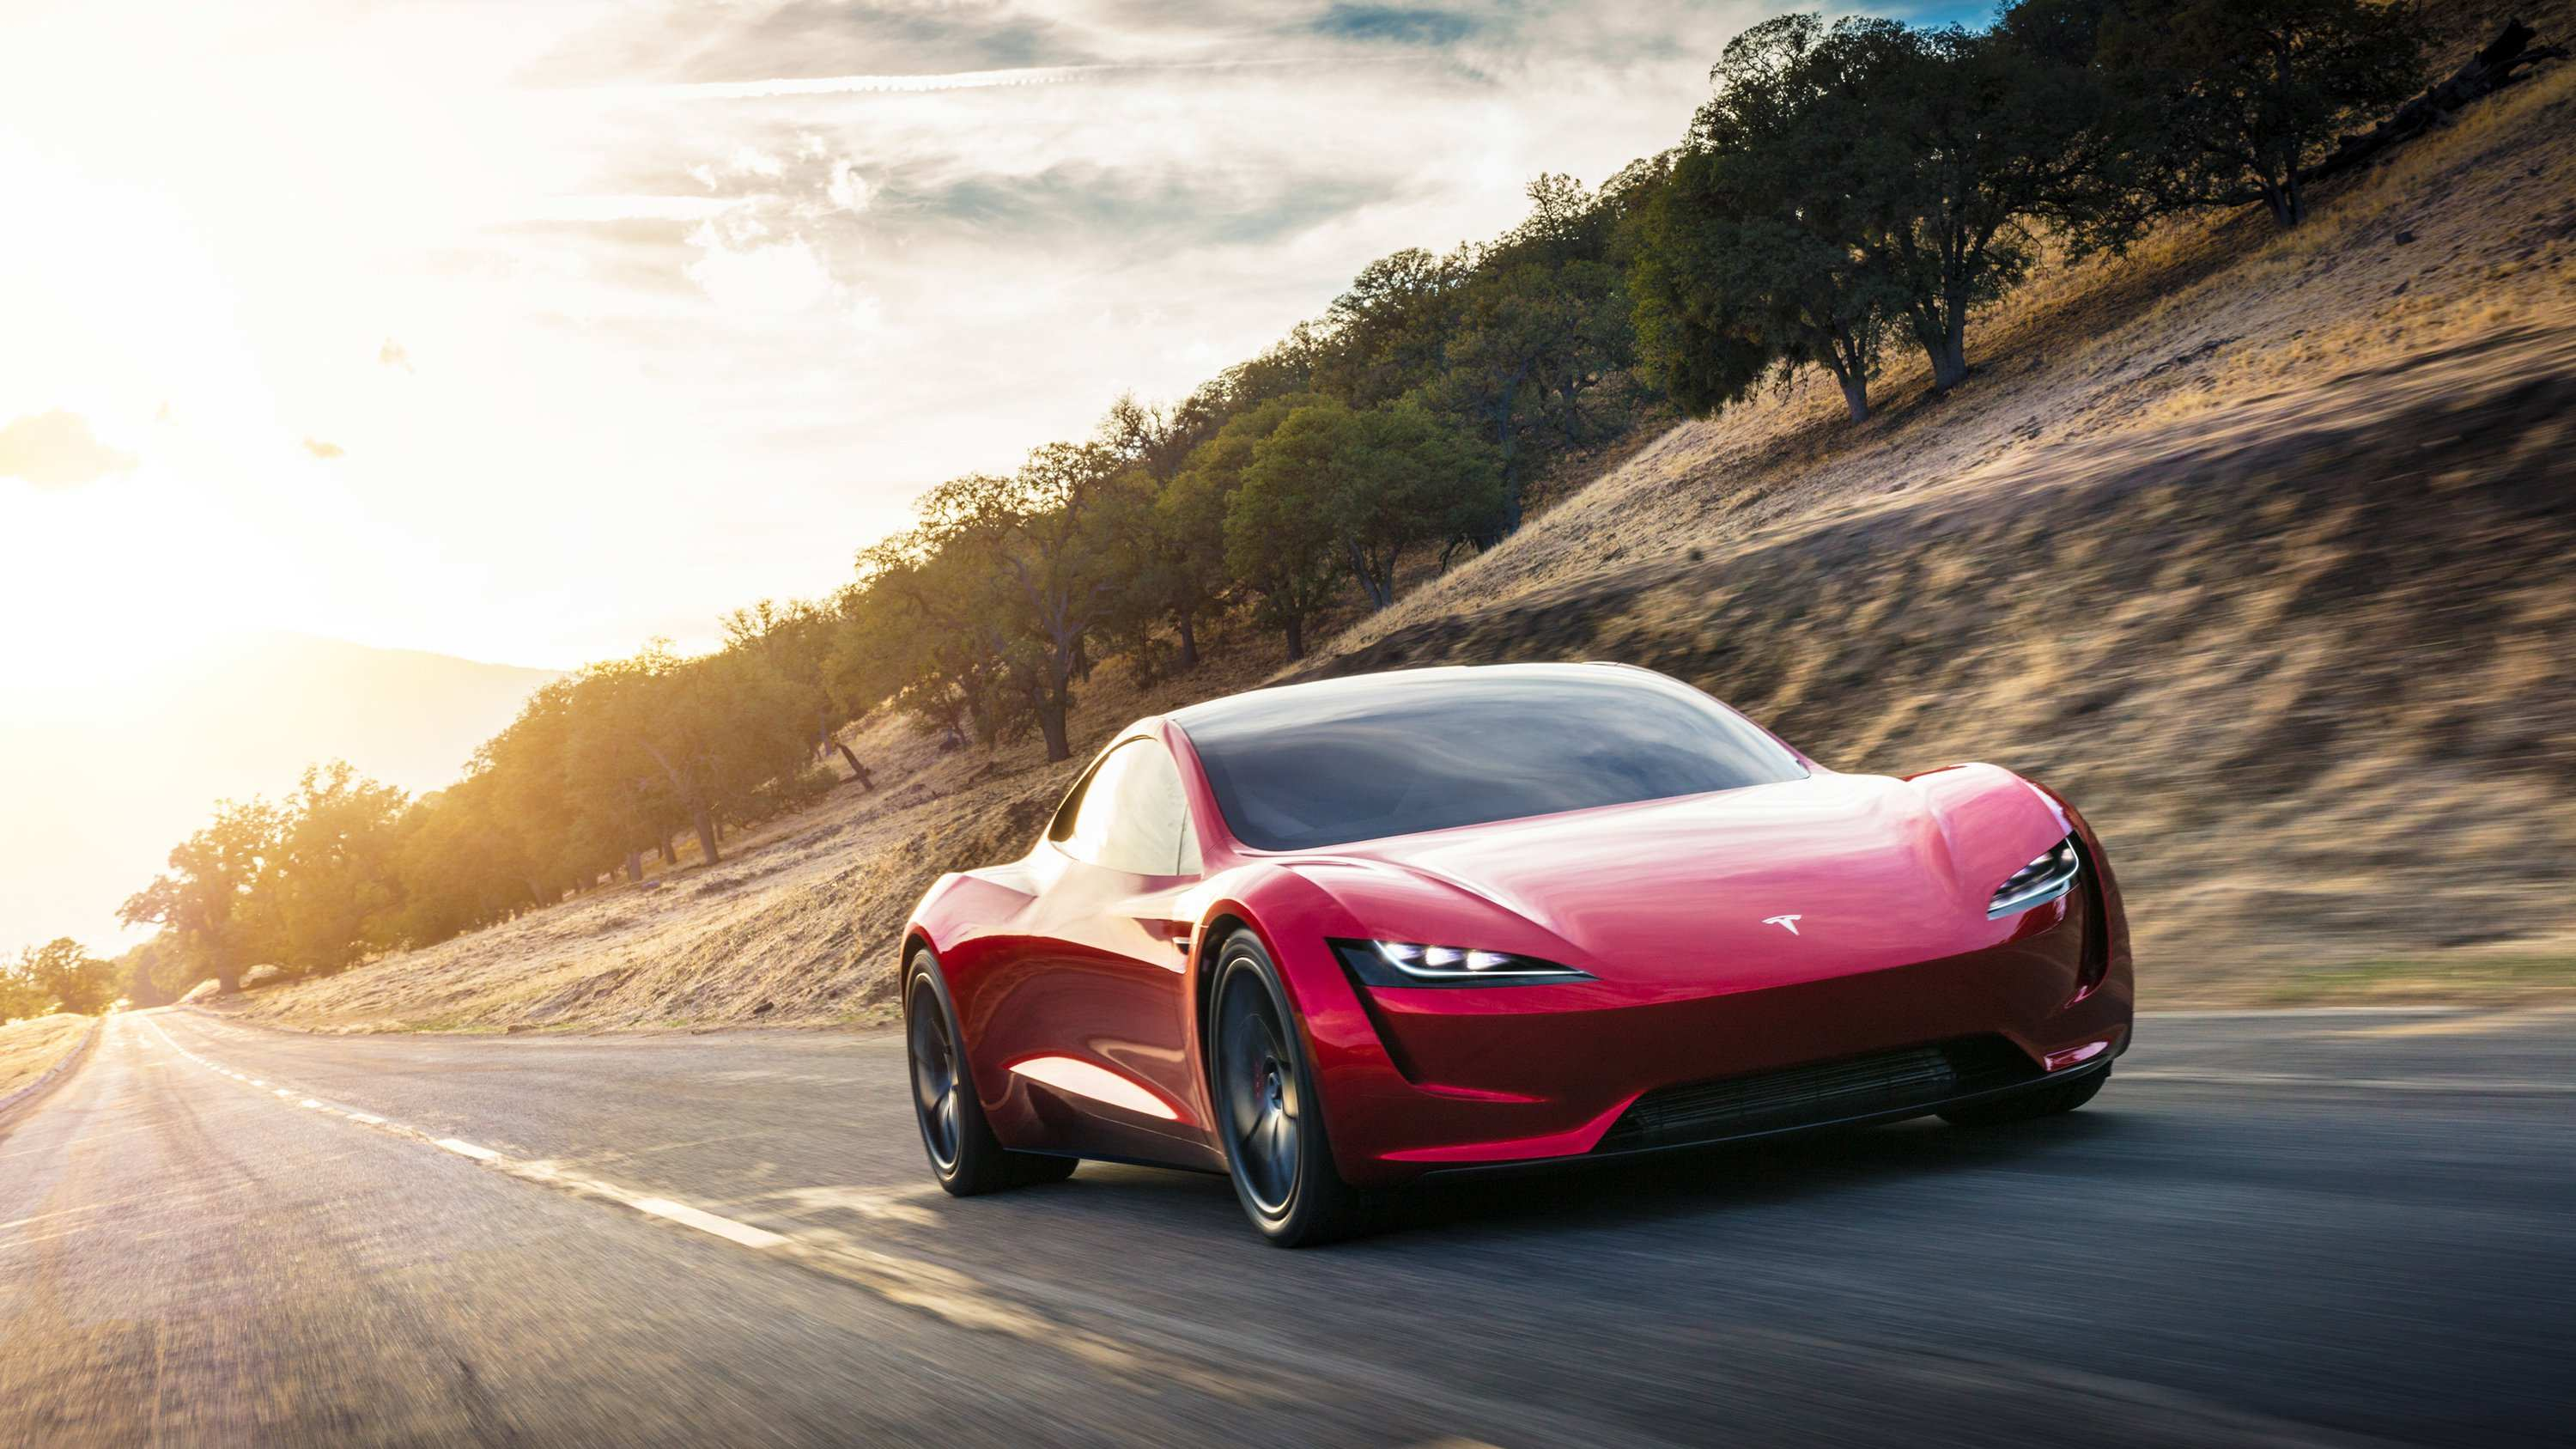 49 The 2019 Tesla Roadster Interior Configurations with 2019 Tesla Roadster Interior